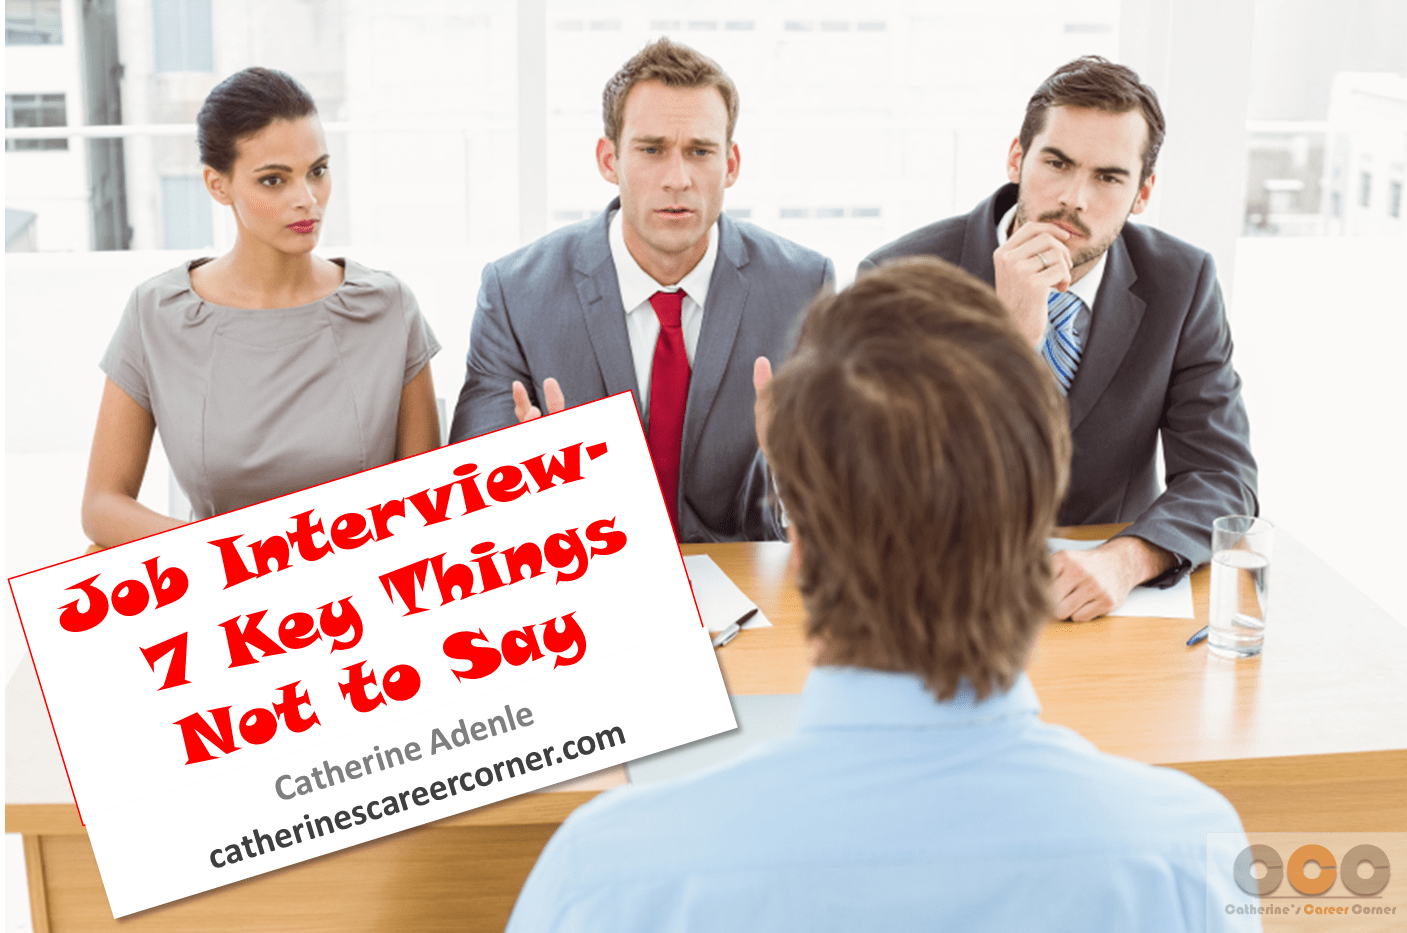 job interview key things not to say catherine s career have a job interview these are 7 key things not to say during a job interview it is normal to get nervous before and during a job interview